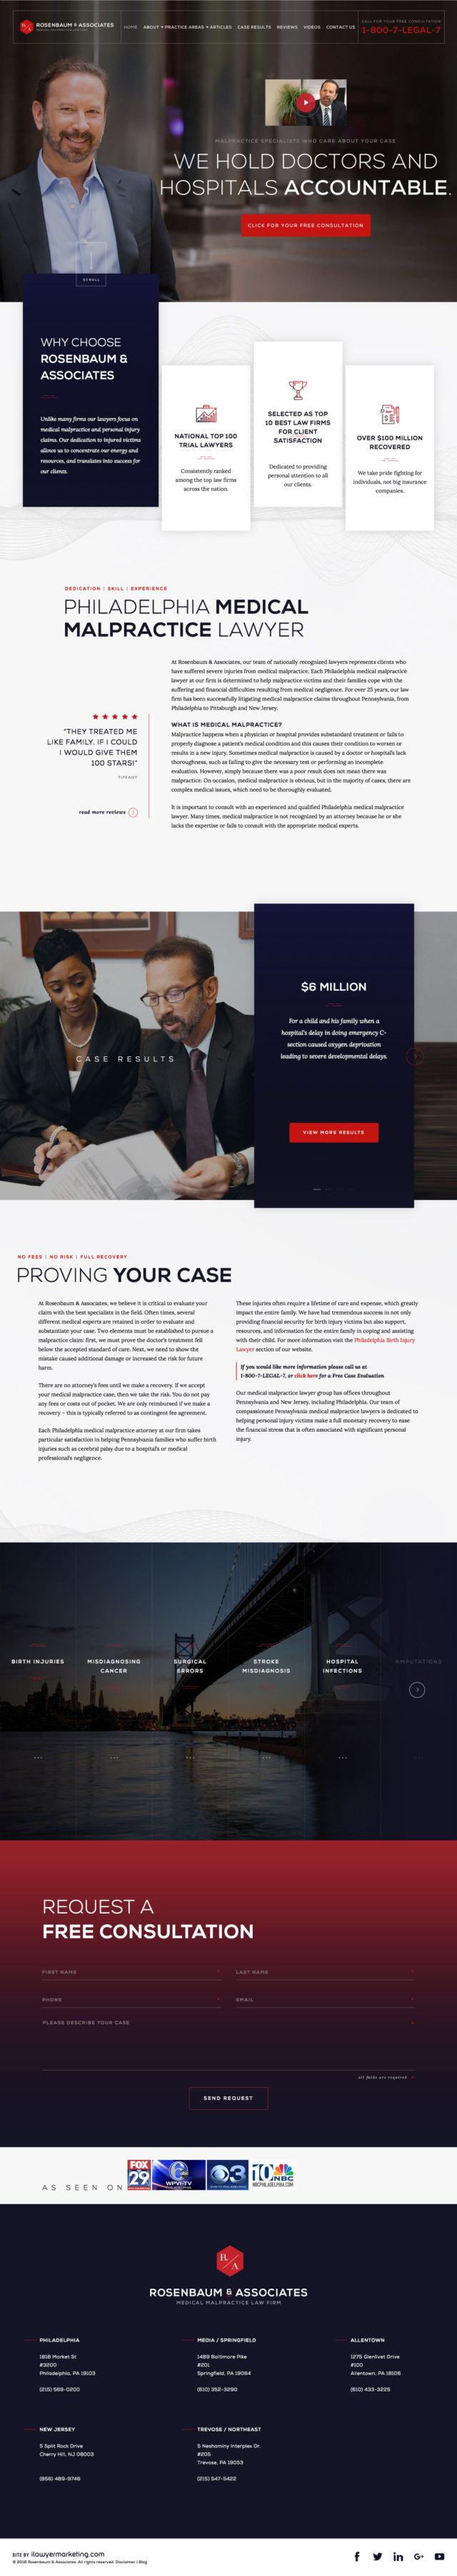 Rosenbaum and Associates Lawyer Website Screenshot